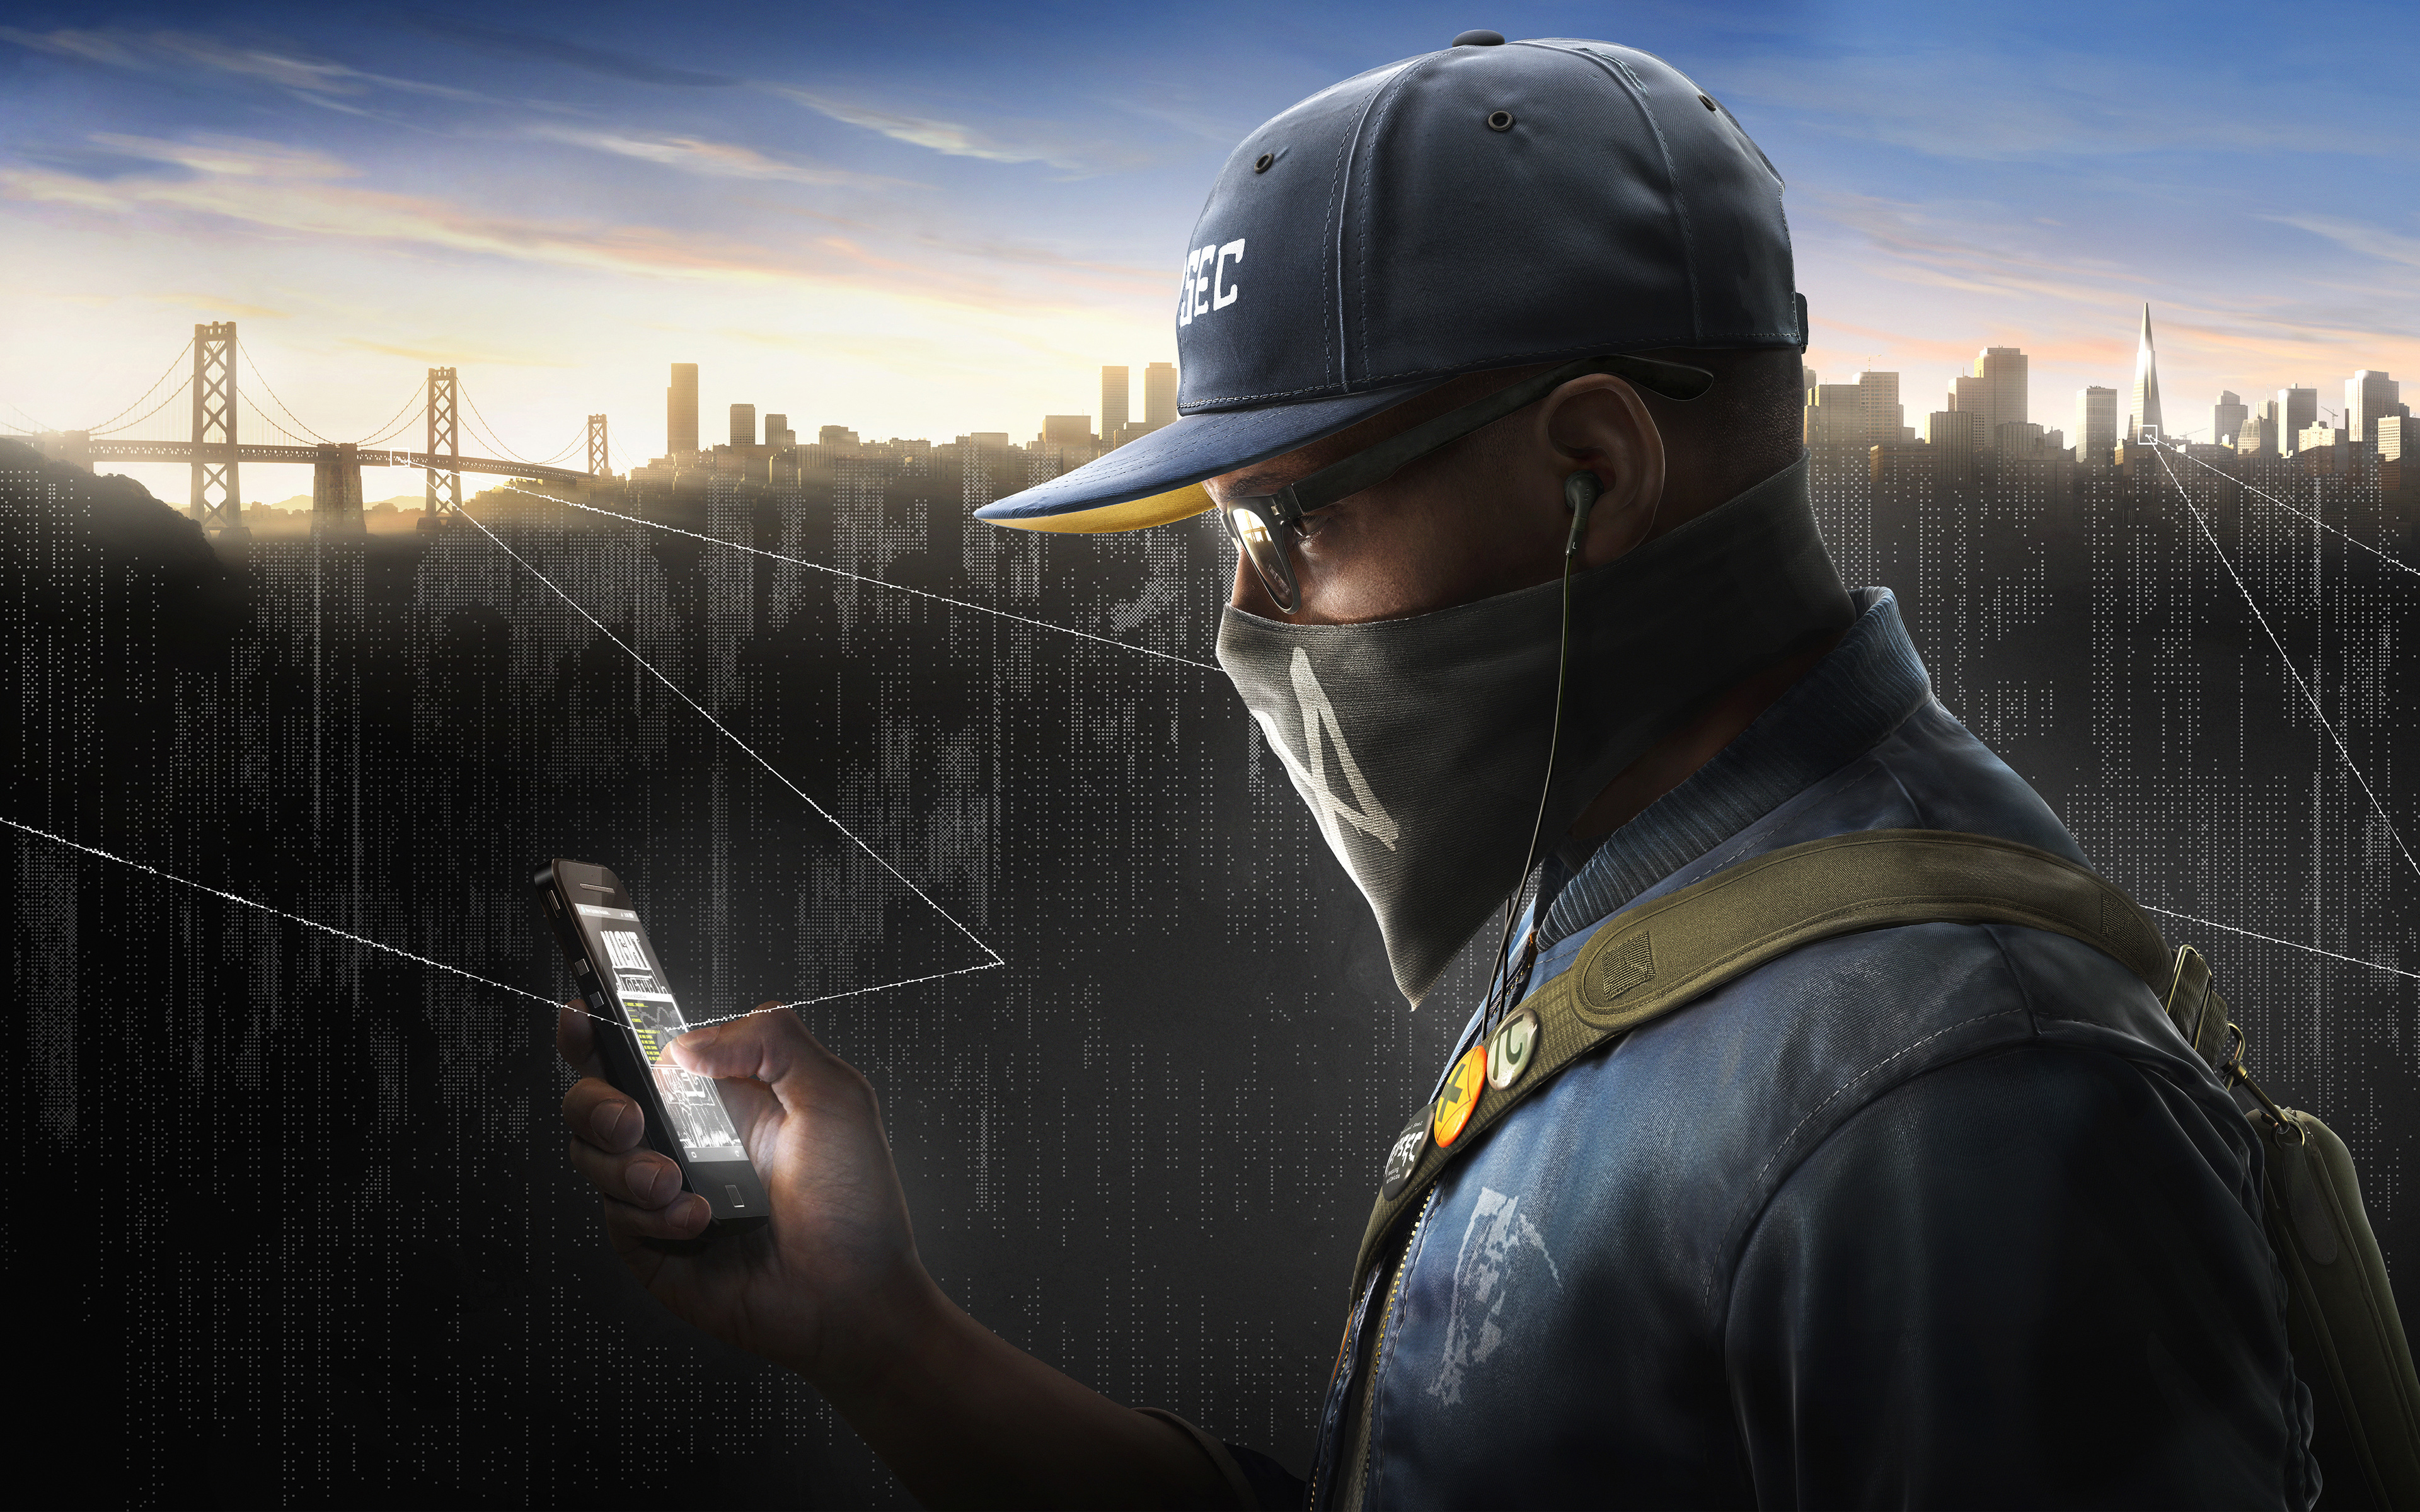 watch dogs 2 wallpaper background hd 62006